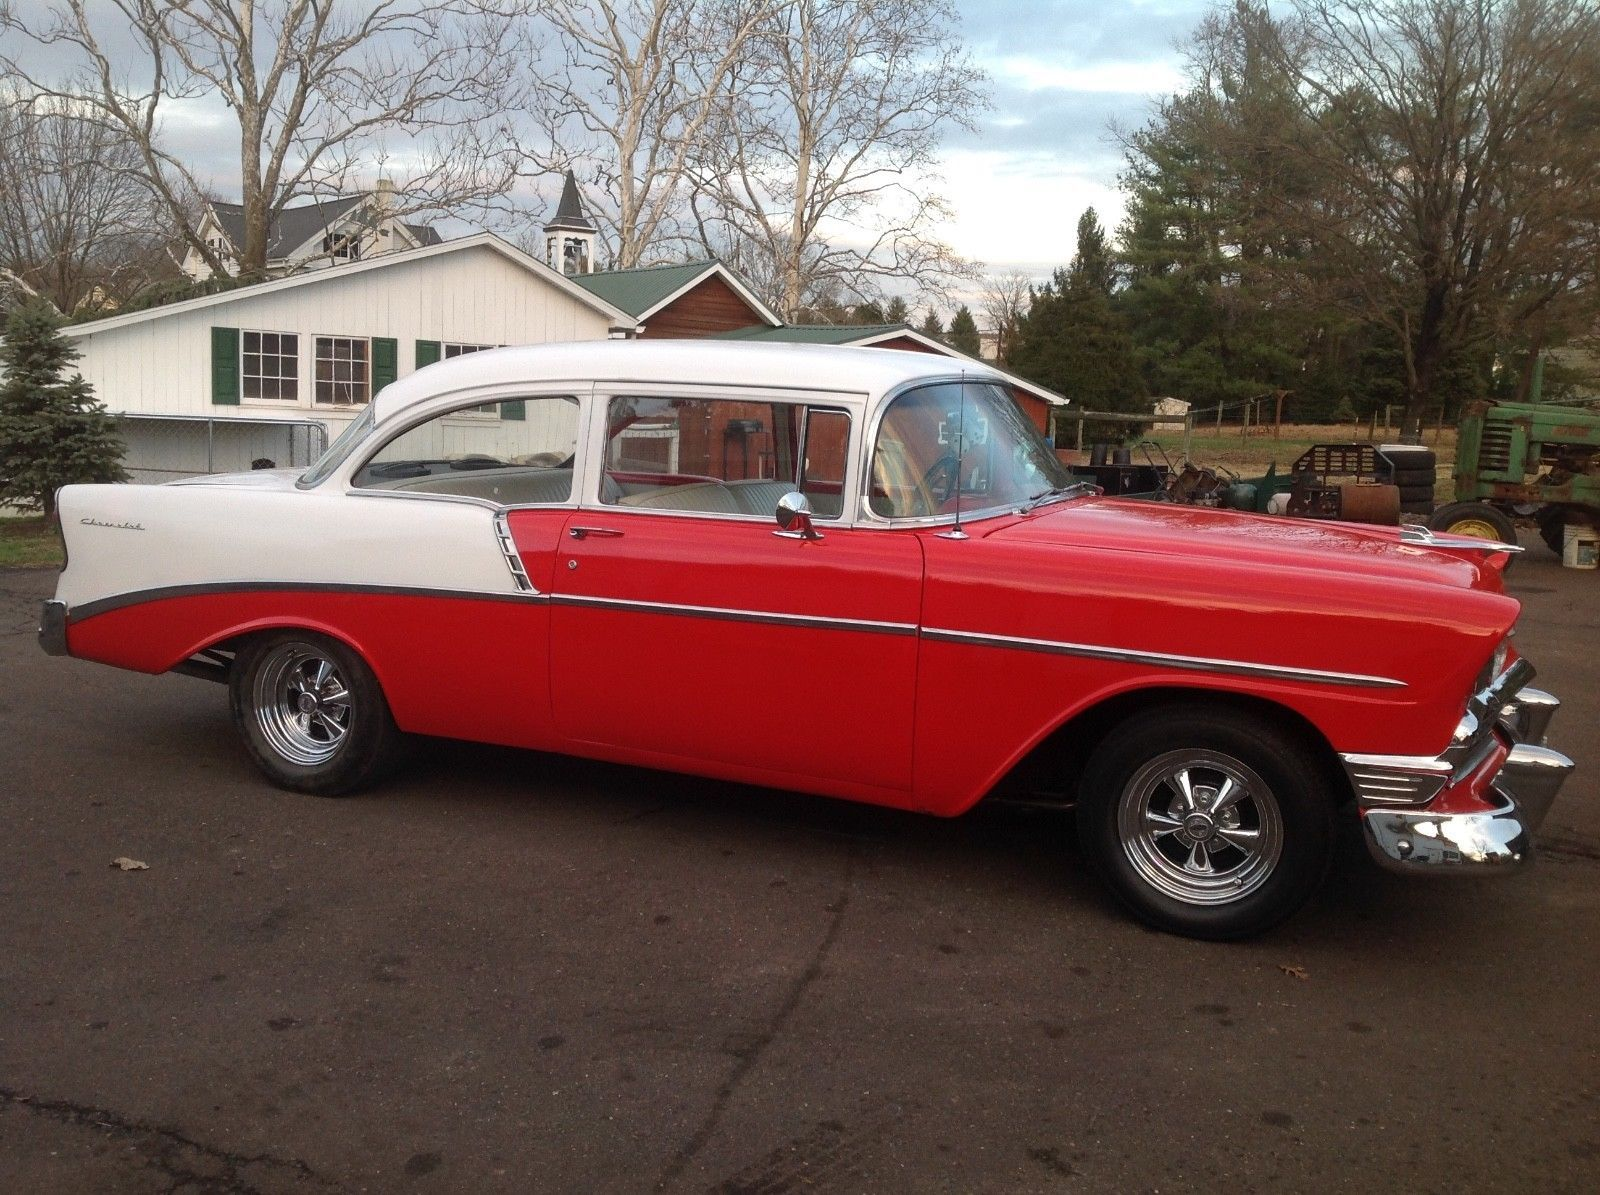 1956 chevrolet bel air custom flat red paint youtube - Awesome Great 1956 Chevrolet Bel Air 150 210 1956 Chevy Old School Restoration 350